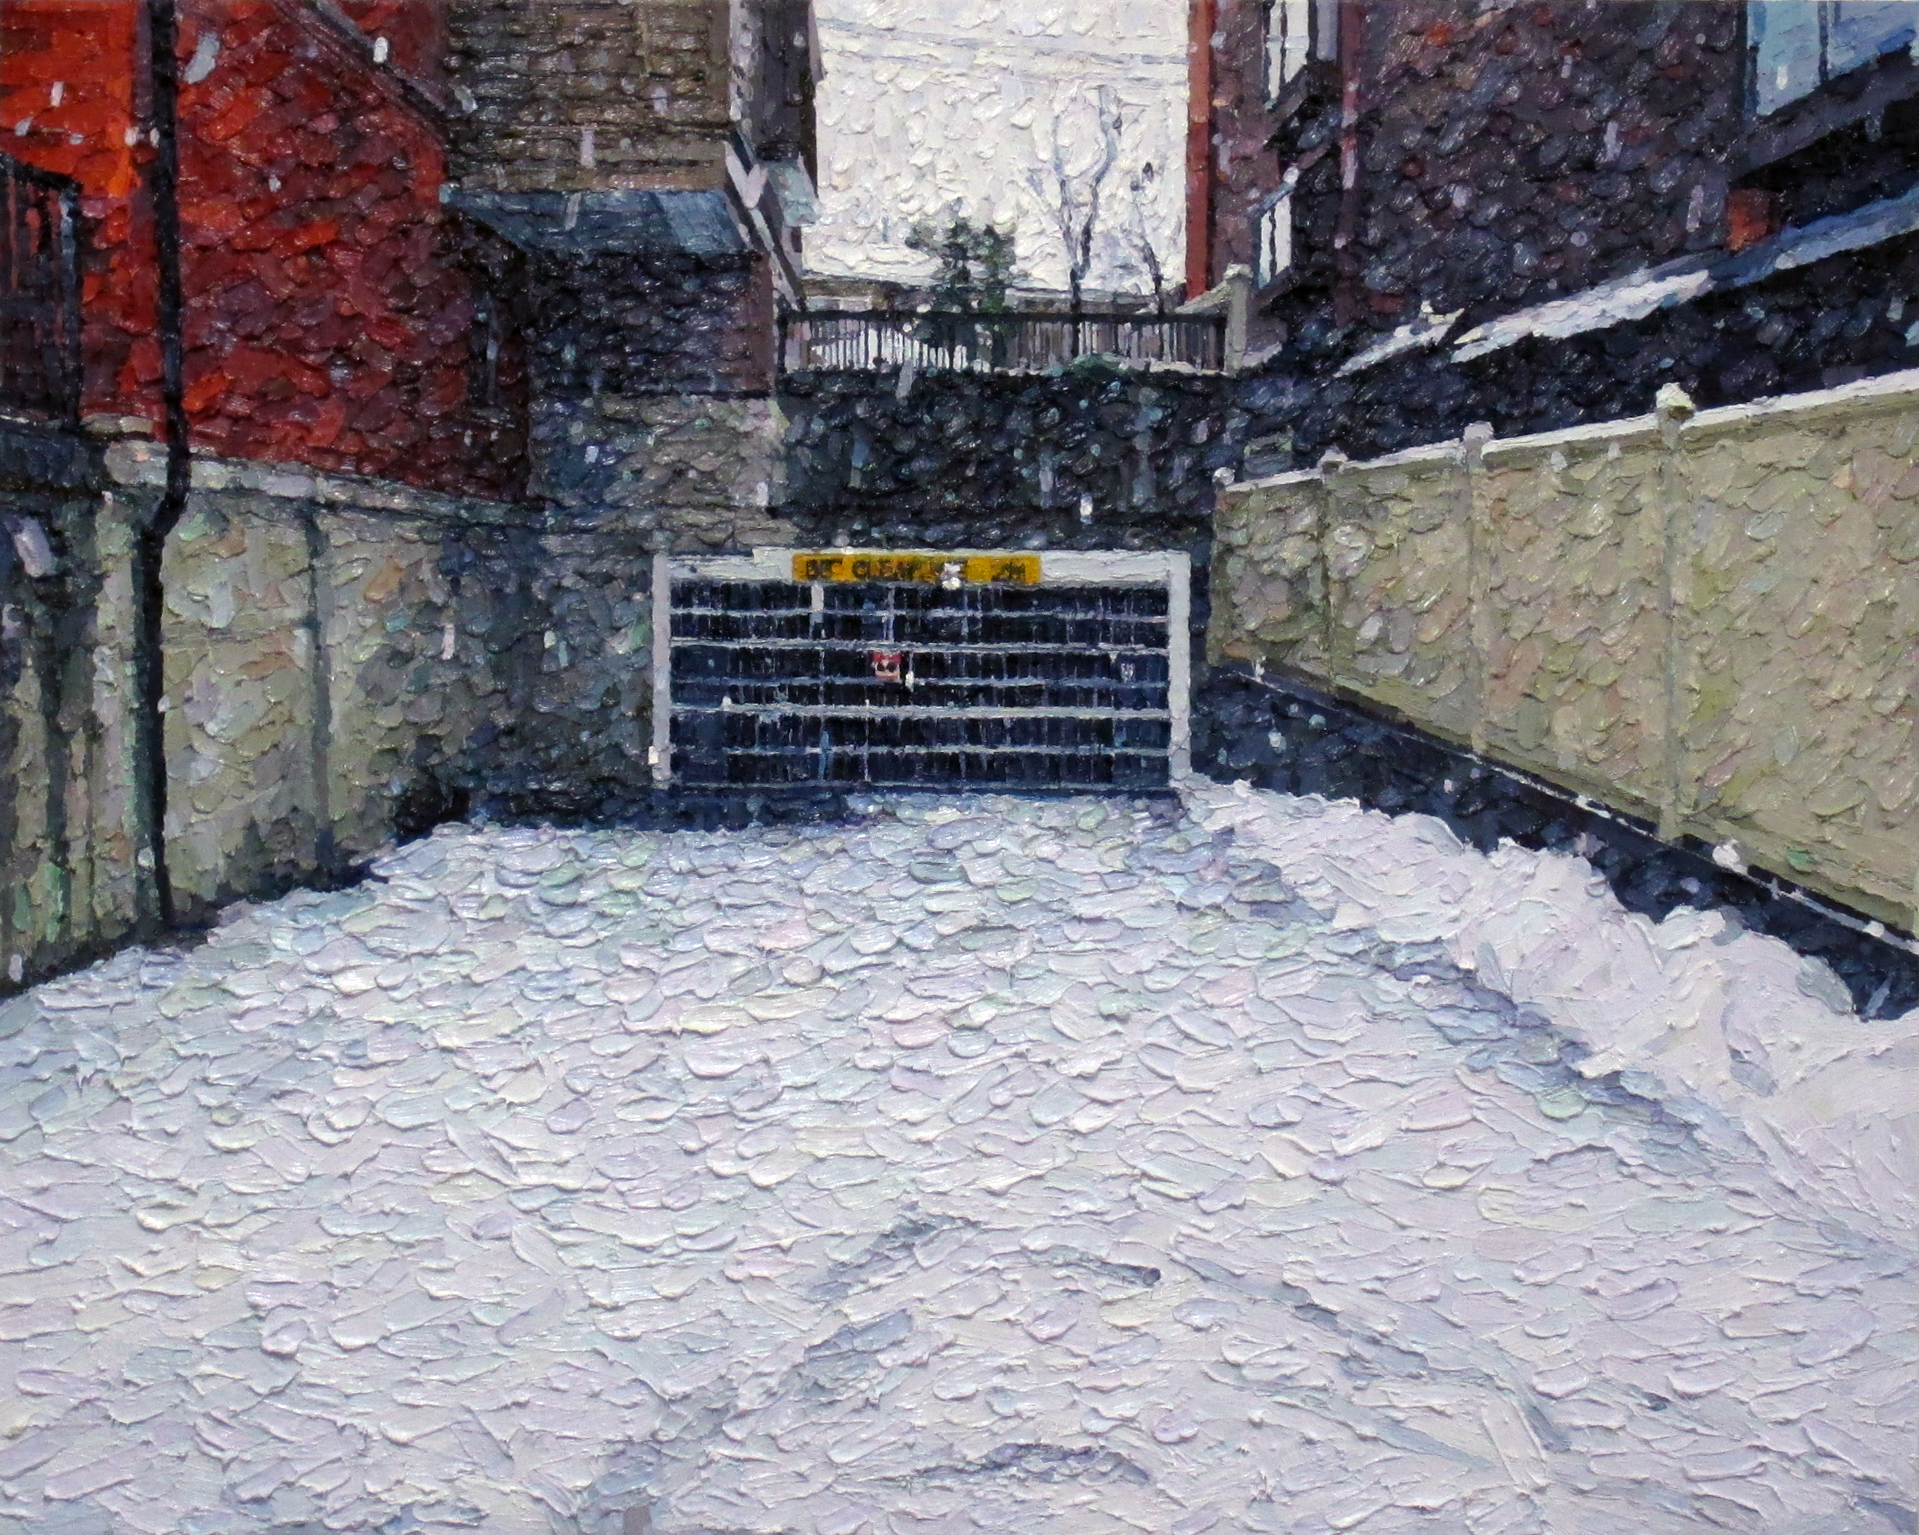 Snowfall oil on canvas 72.7 x 91 cm 2014